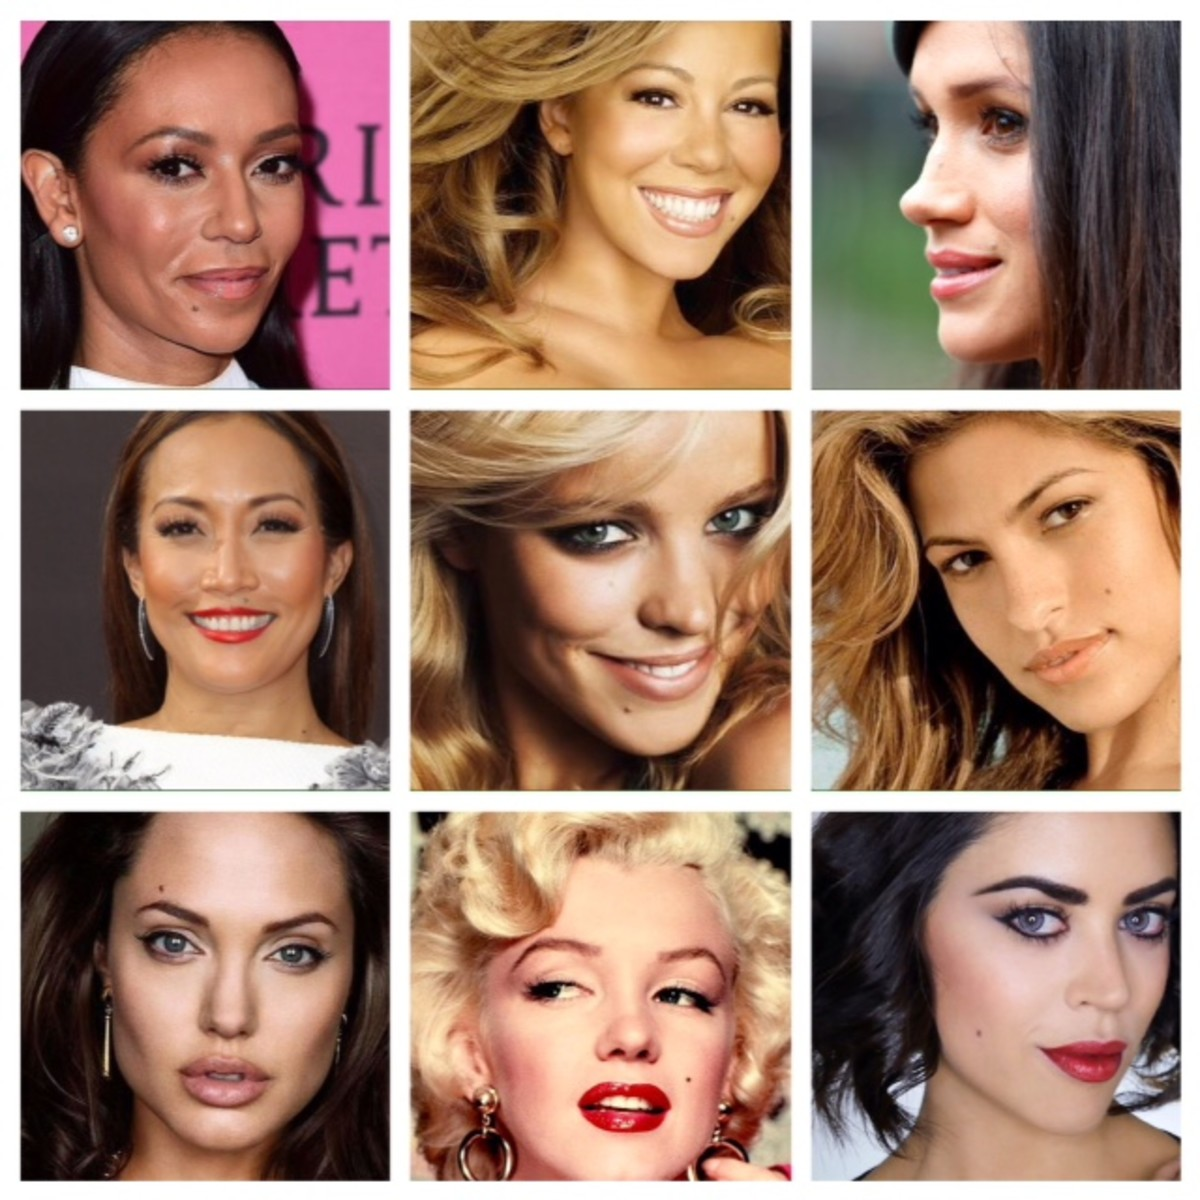 celebrities-with-physical-imperfections-that-dont-keep-them-out-of-movies